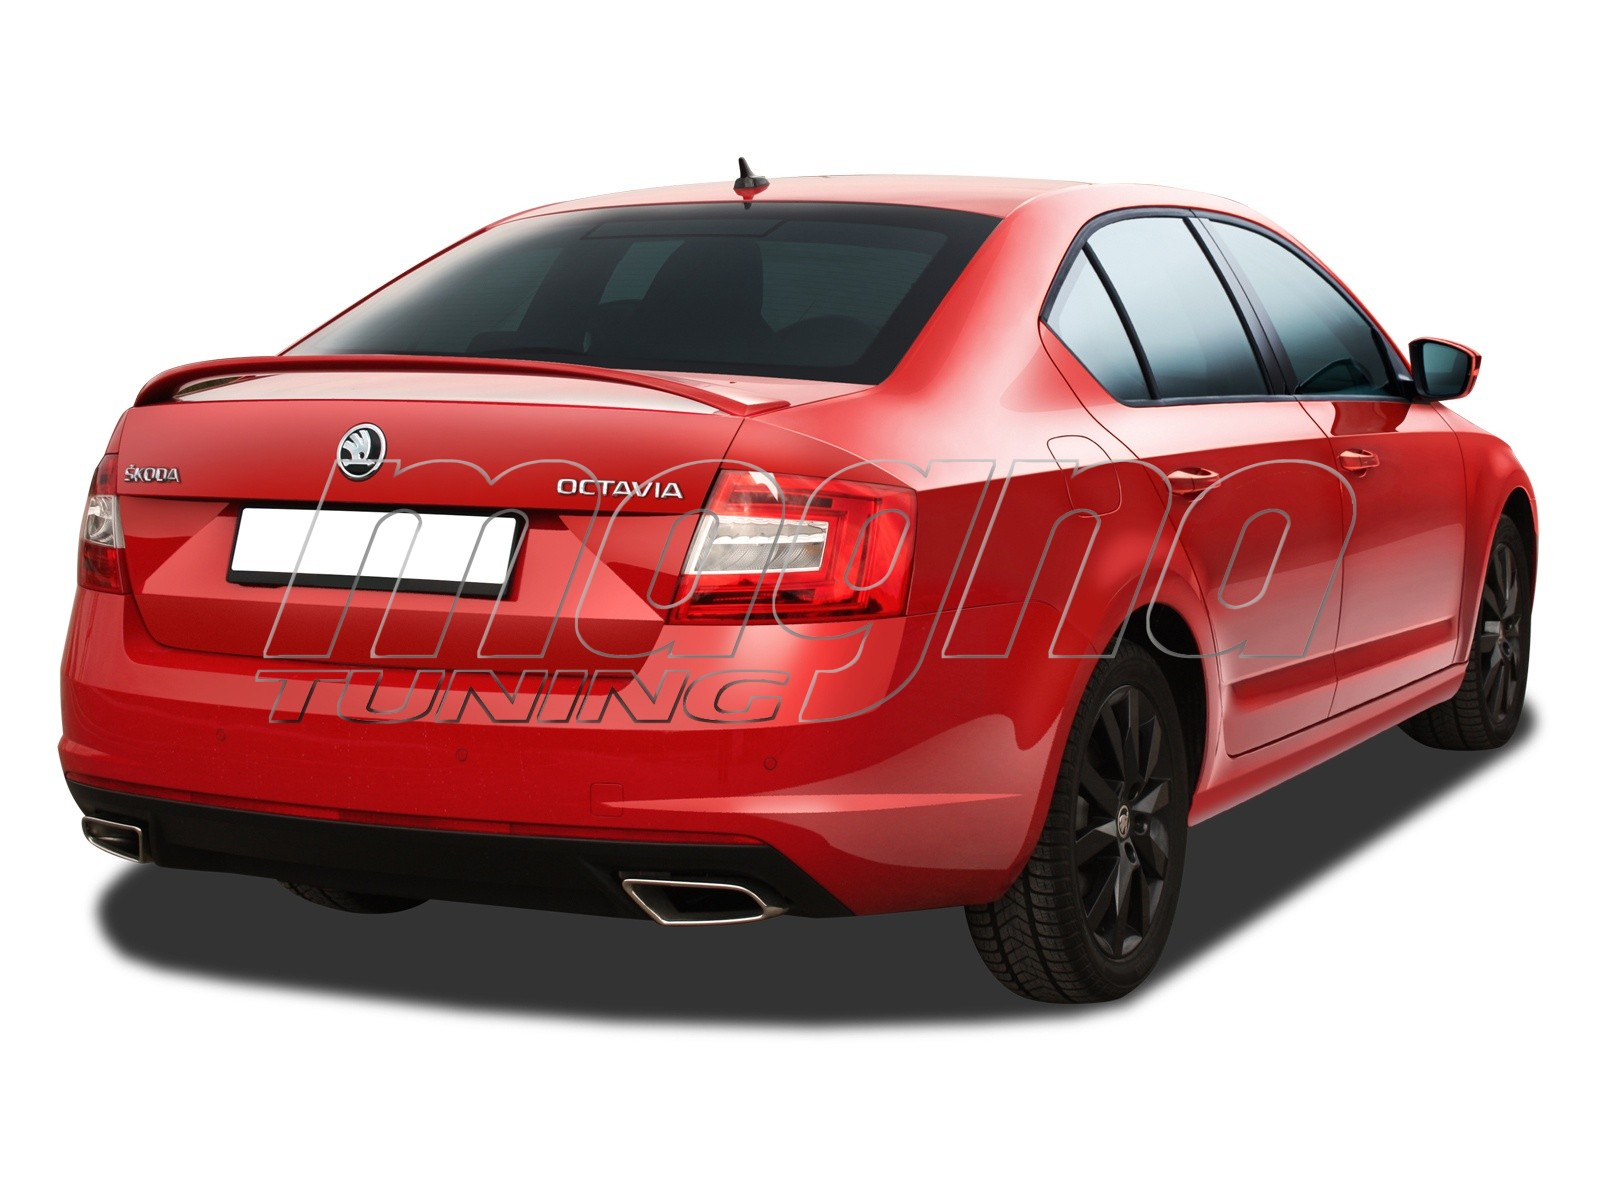 skoda octavia mk3 5e rx rear wing. Black Bedroom Furniture Sets. Home Design Ideas